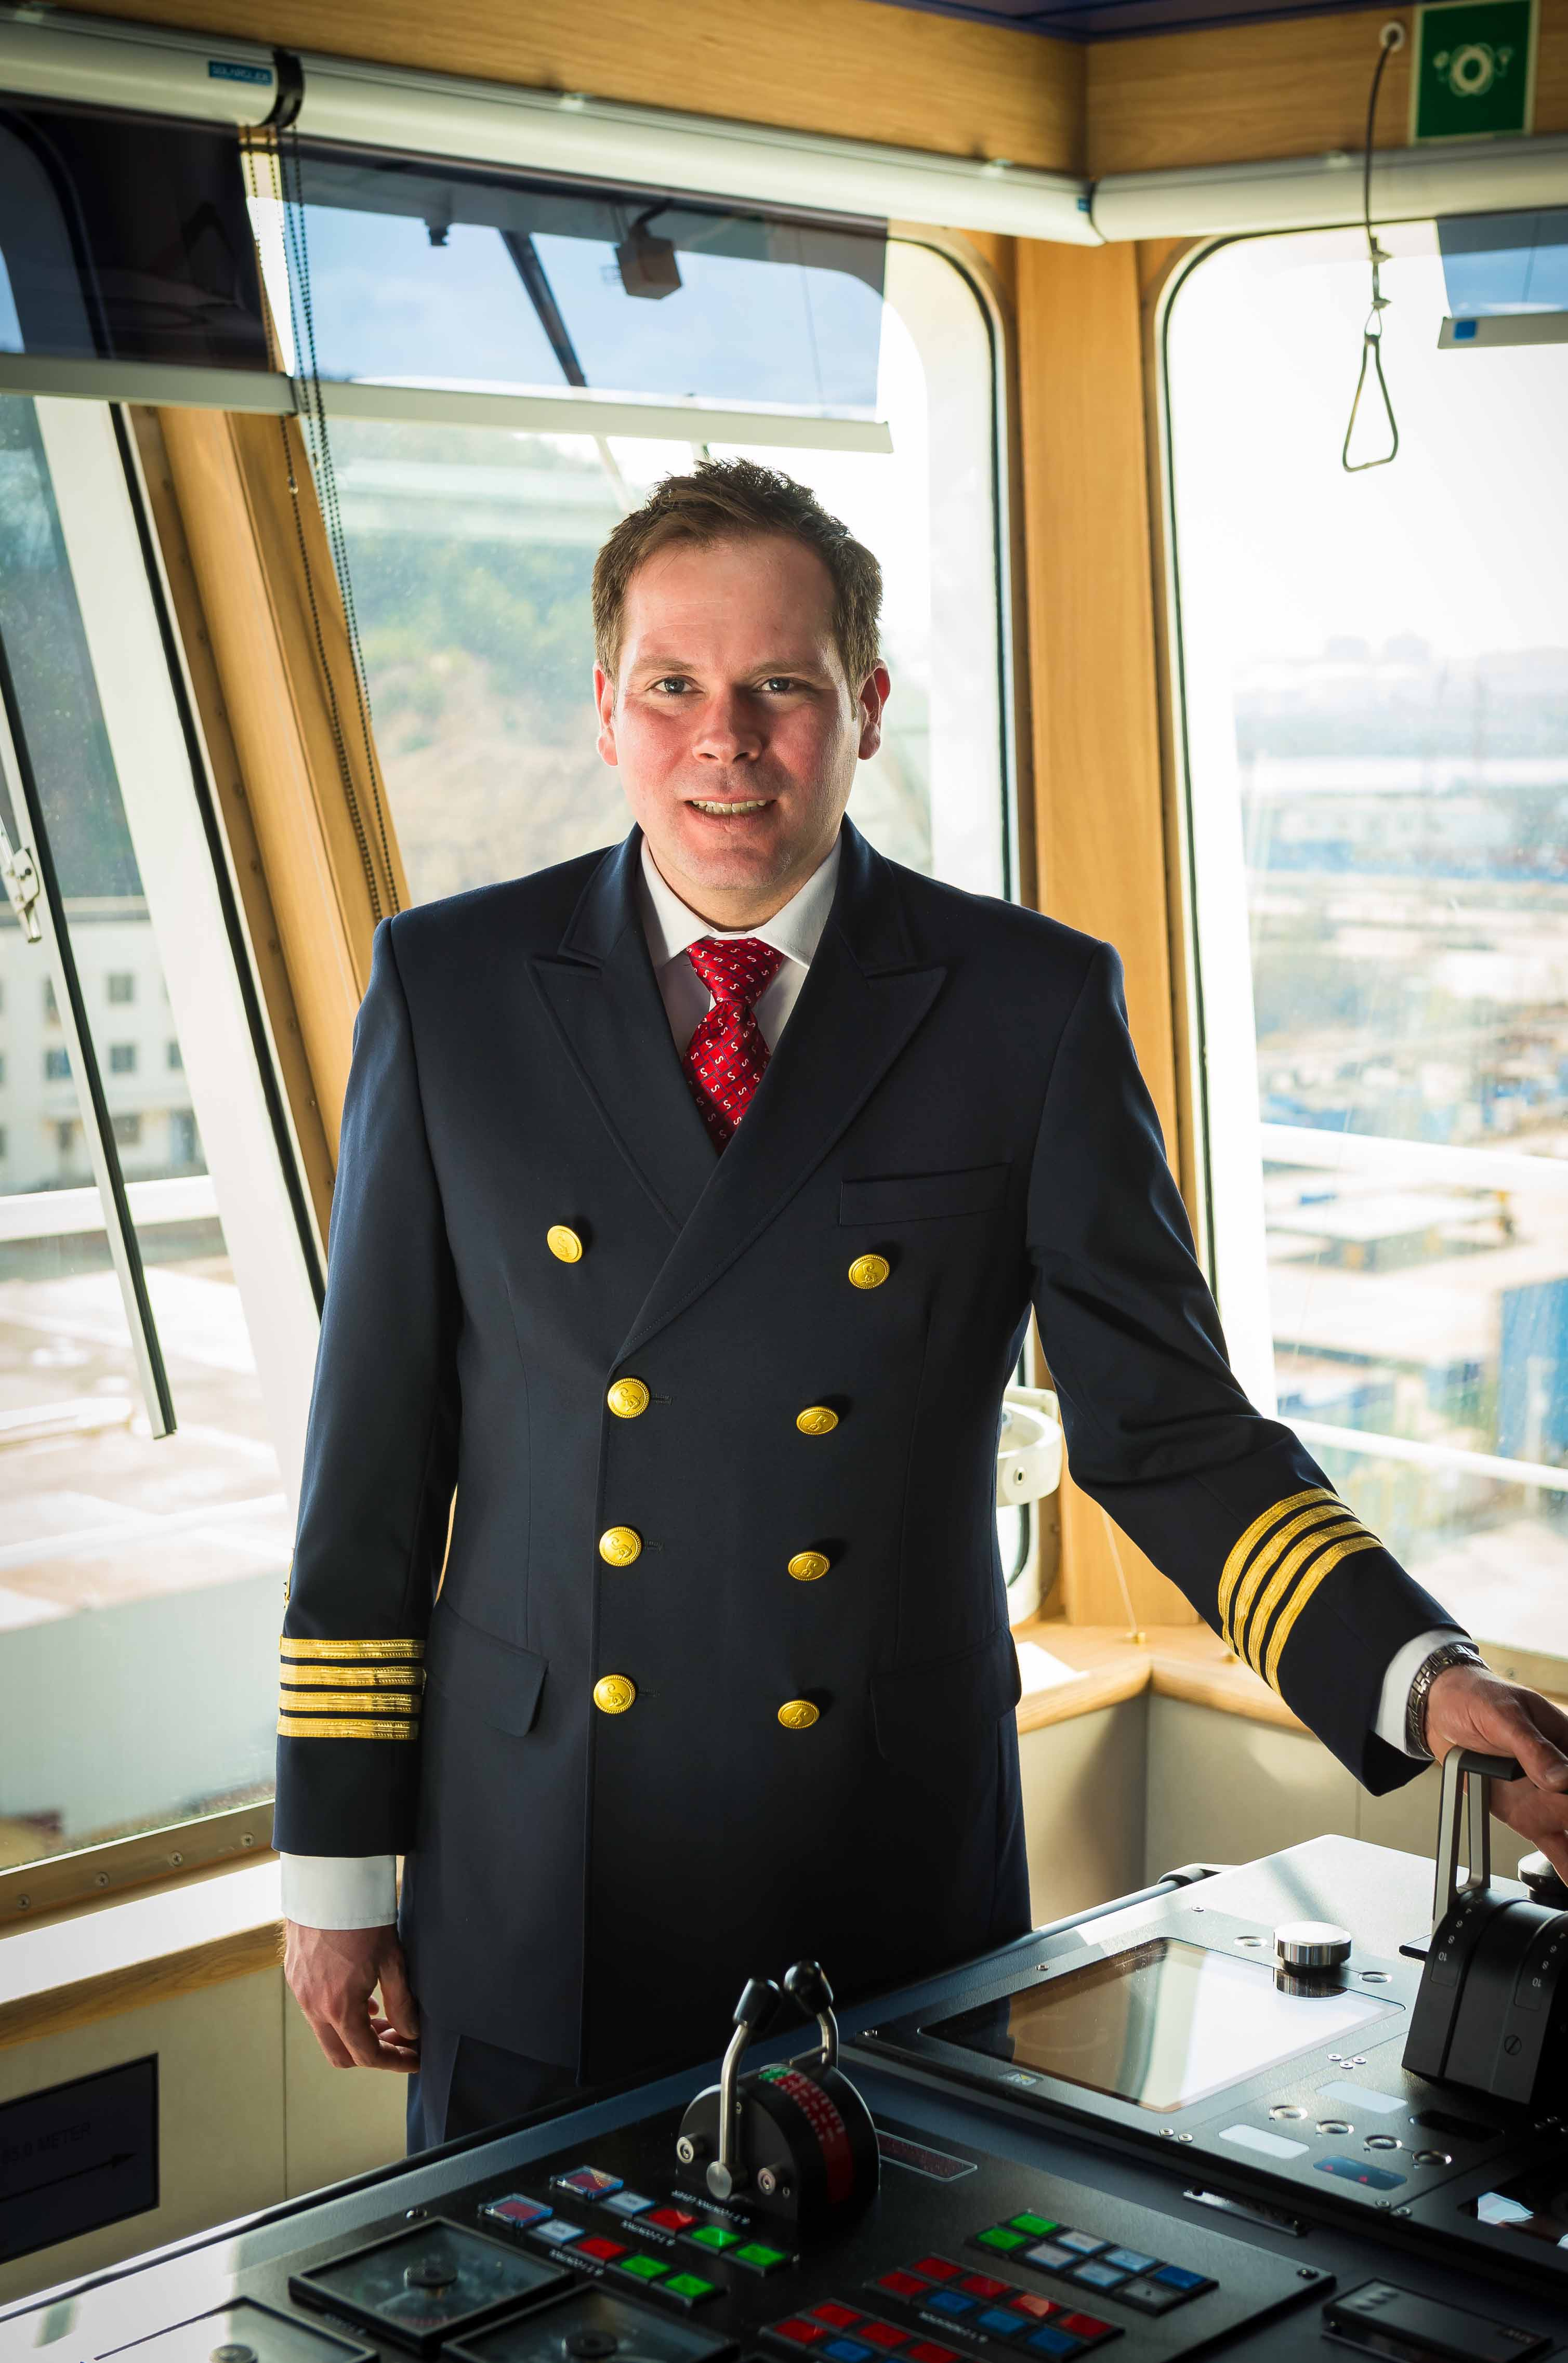 MASTER OF THE HIGH SEAS: Matthew Lynch has been appointed Senior Master on board Stena Line's newest ferry Stena Estrid. Captain 'Matt' (40) has described his appointment as the highlight of his 24-year sailing career to date and is currently steering Stena Estrid on its 10,000 mile journey from the AVIC Weihai Shipyard in China, where it was built, to the Irish Sea where it will start service on the Holyhead to Dublin route in January.